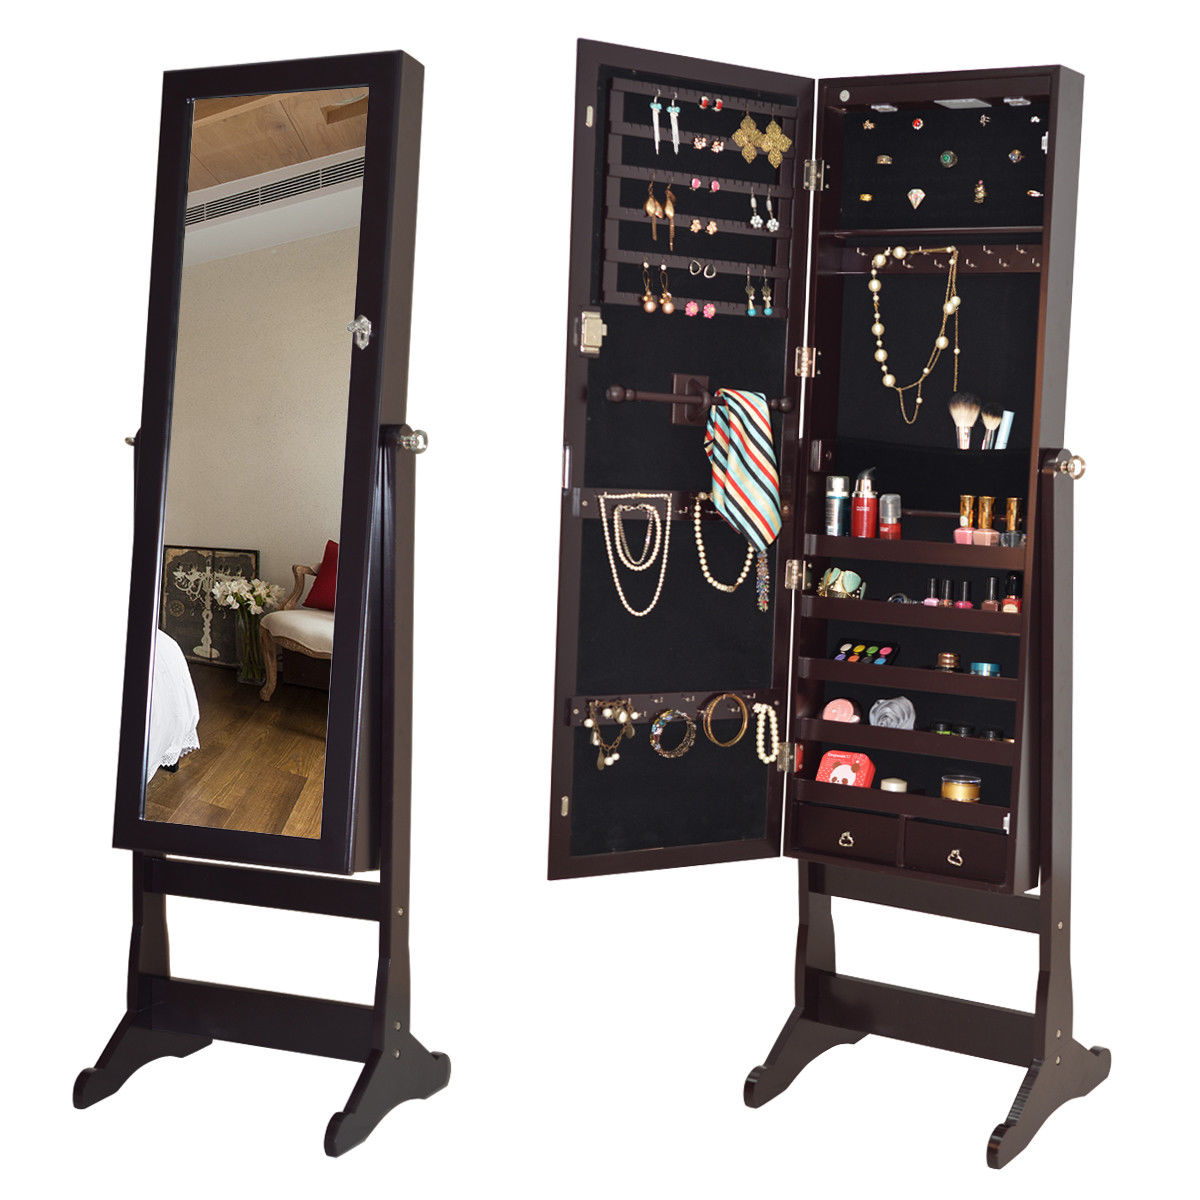 Costway Lockable Mirrored Jewelry Cabinet Armoire Organizer Storage w Stand & LED Lights by Costway